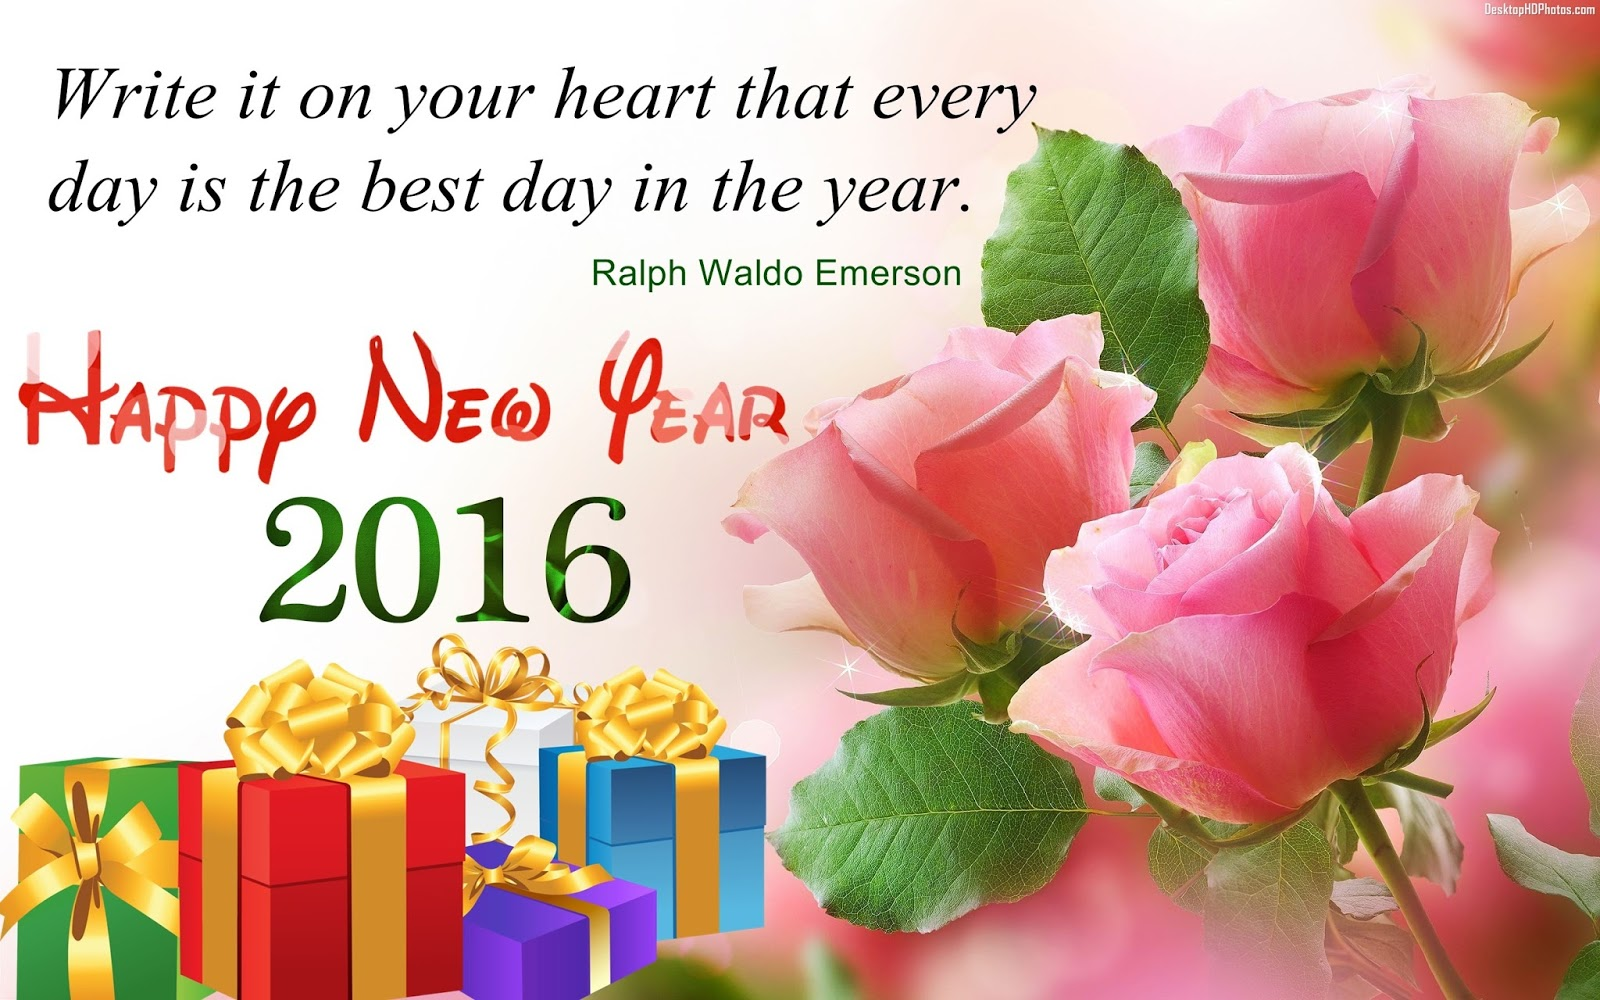 happy new year 2016 greetings happy new year 2016 hd wallpaper